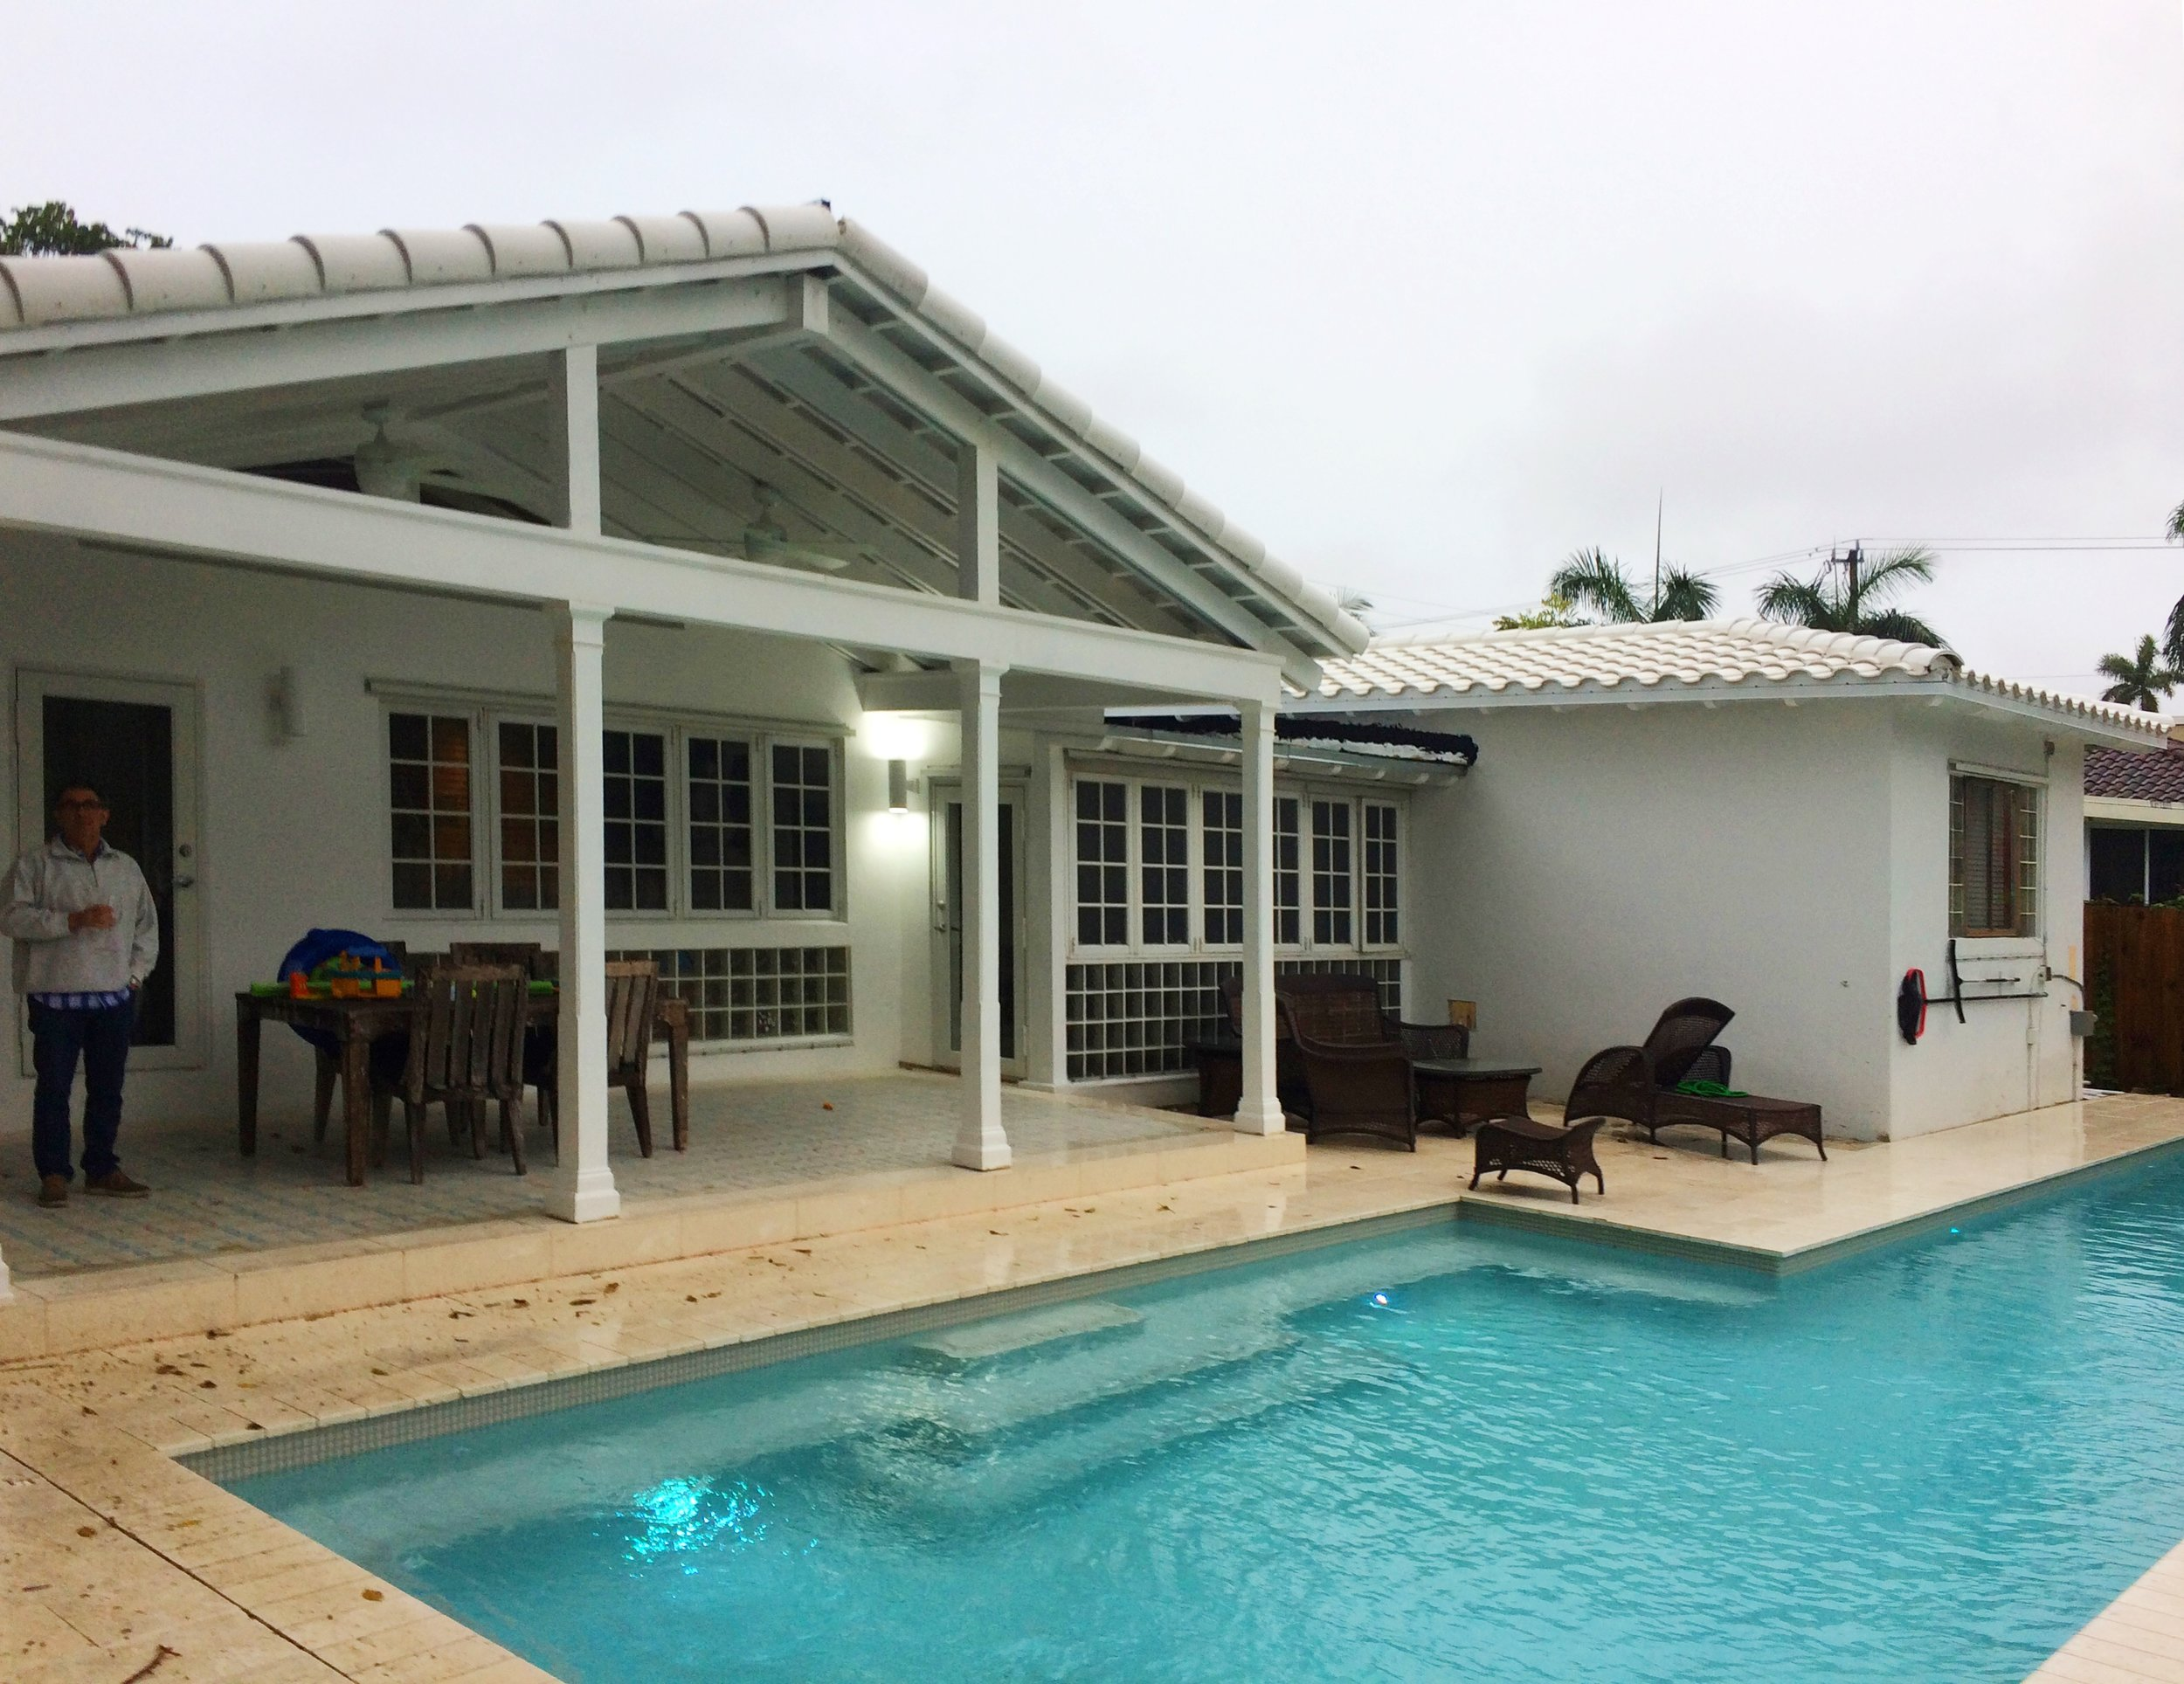 POOL AND PORCH